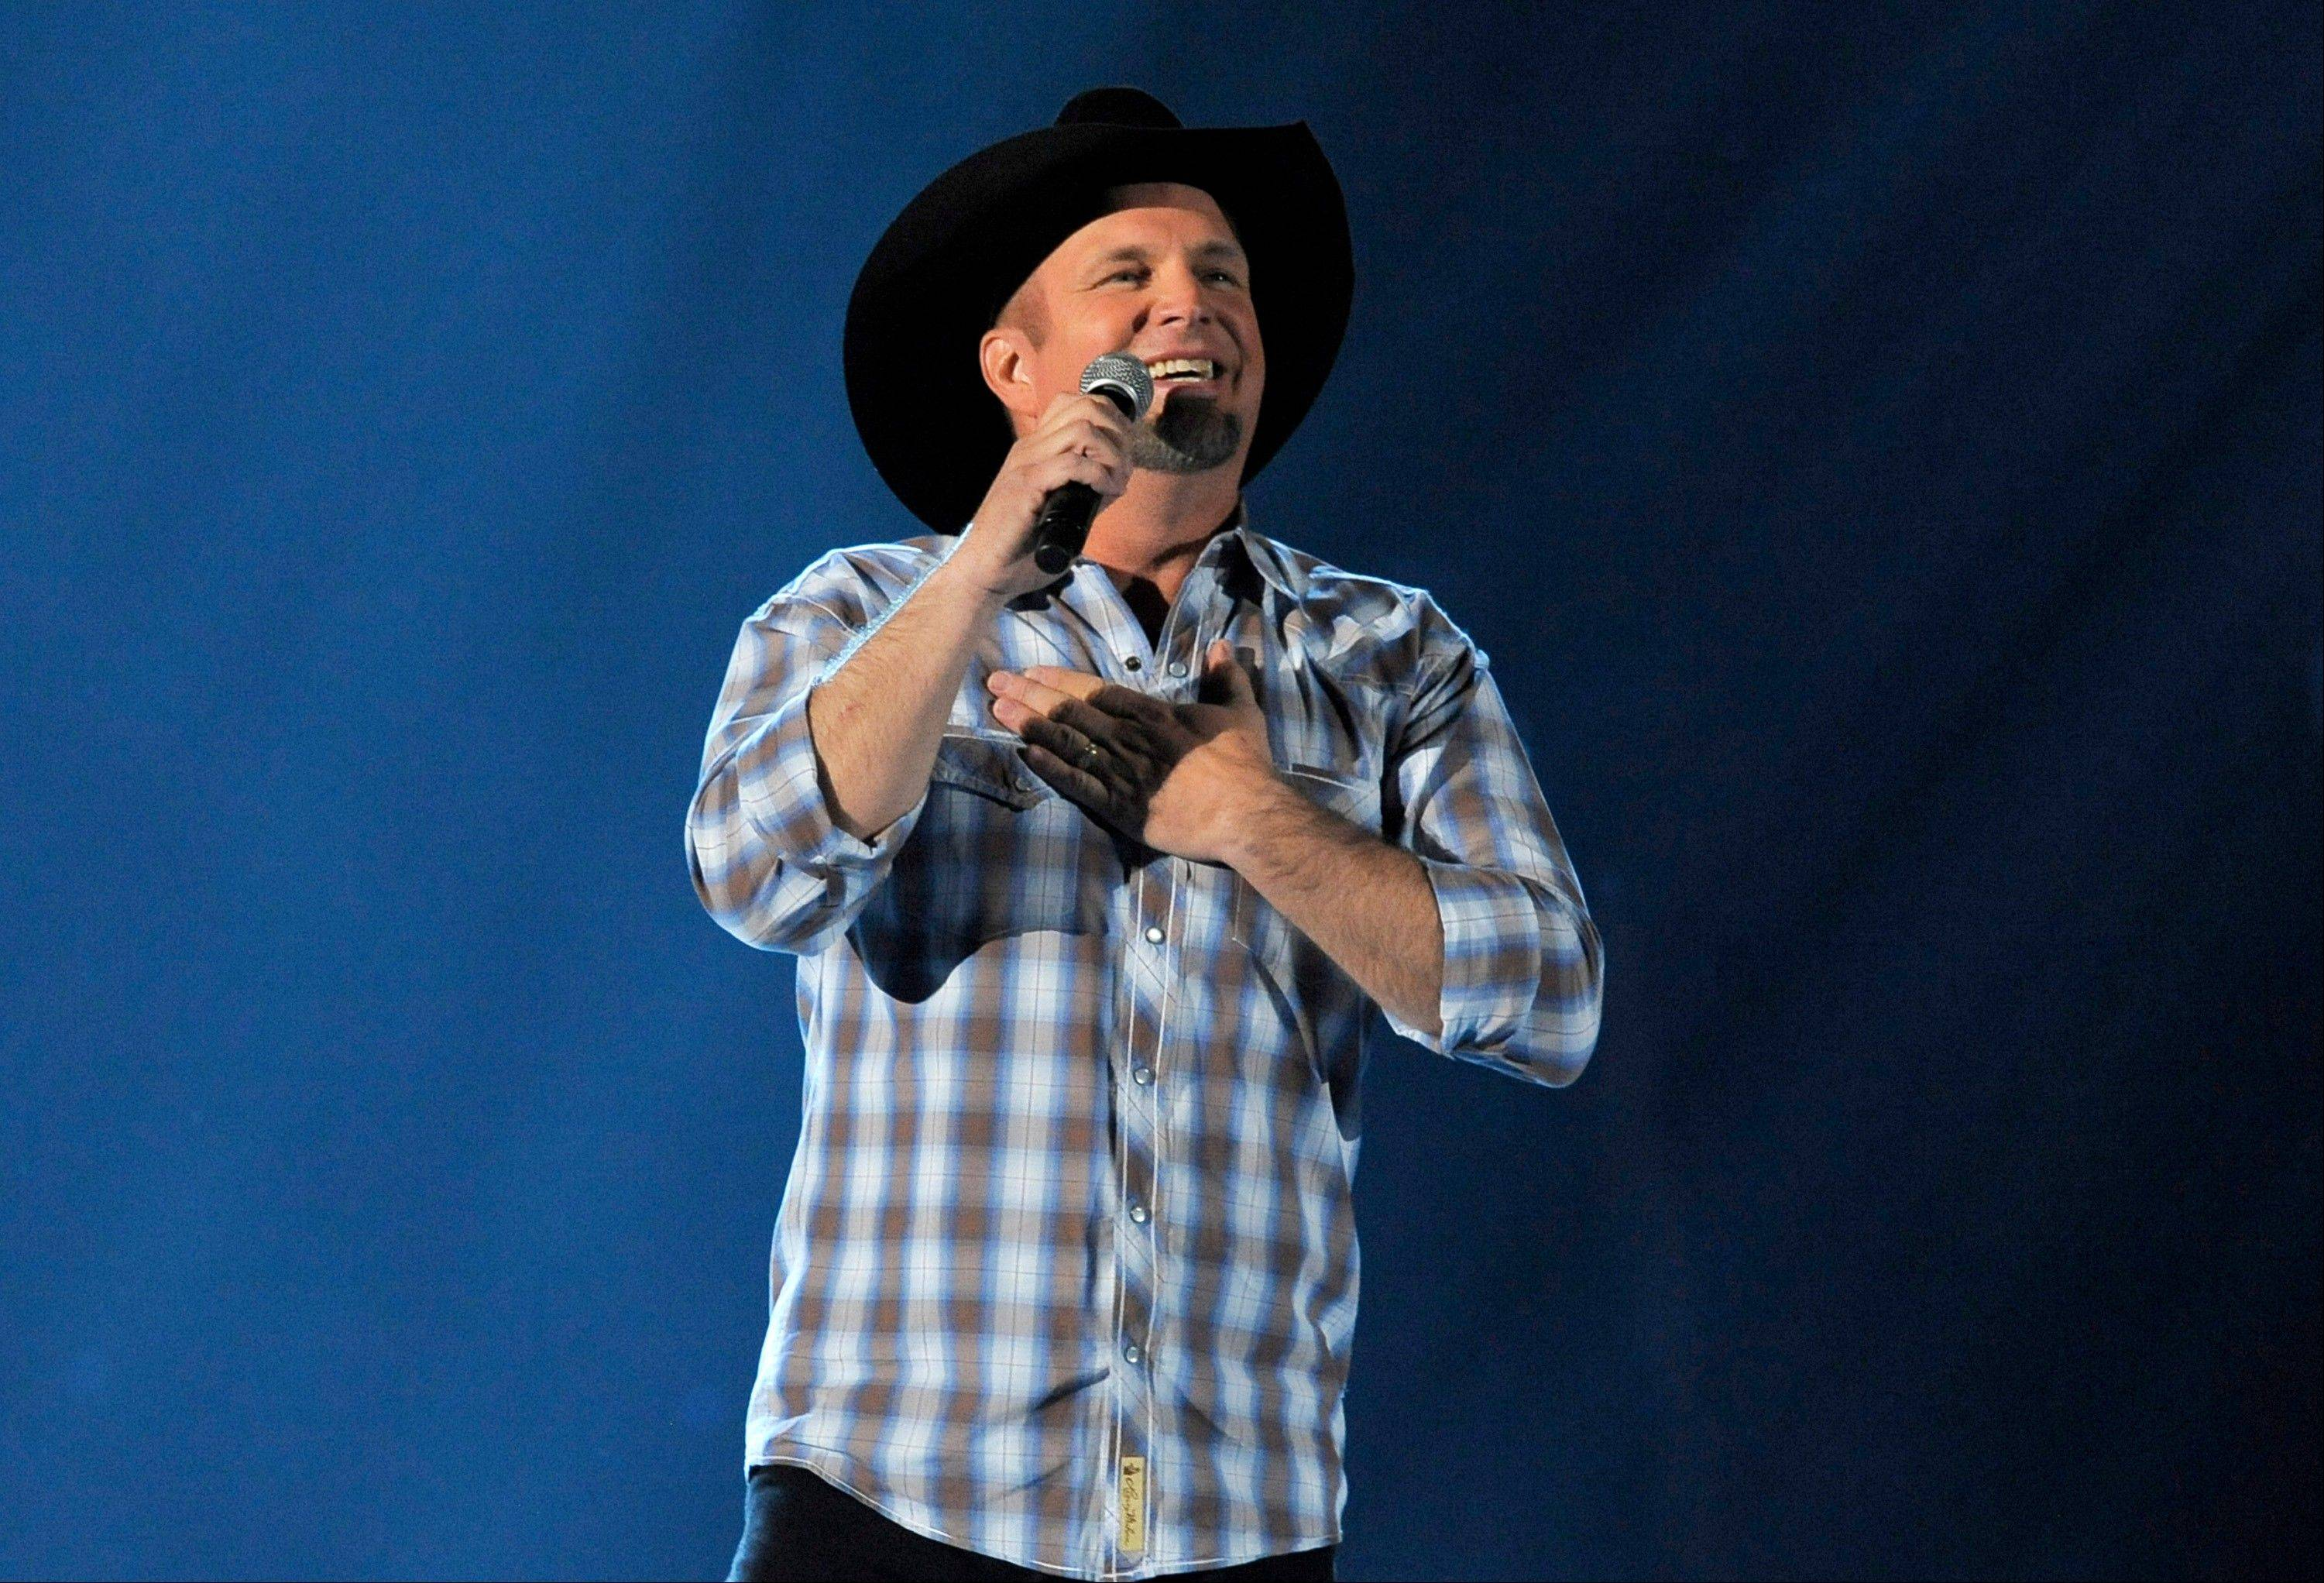 CBS will air a rare live broadcast concert special by Garth Brooks from the Encore Theater at the Wynn Las Vegas on Friday, Nov. 29.